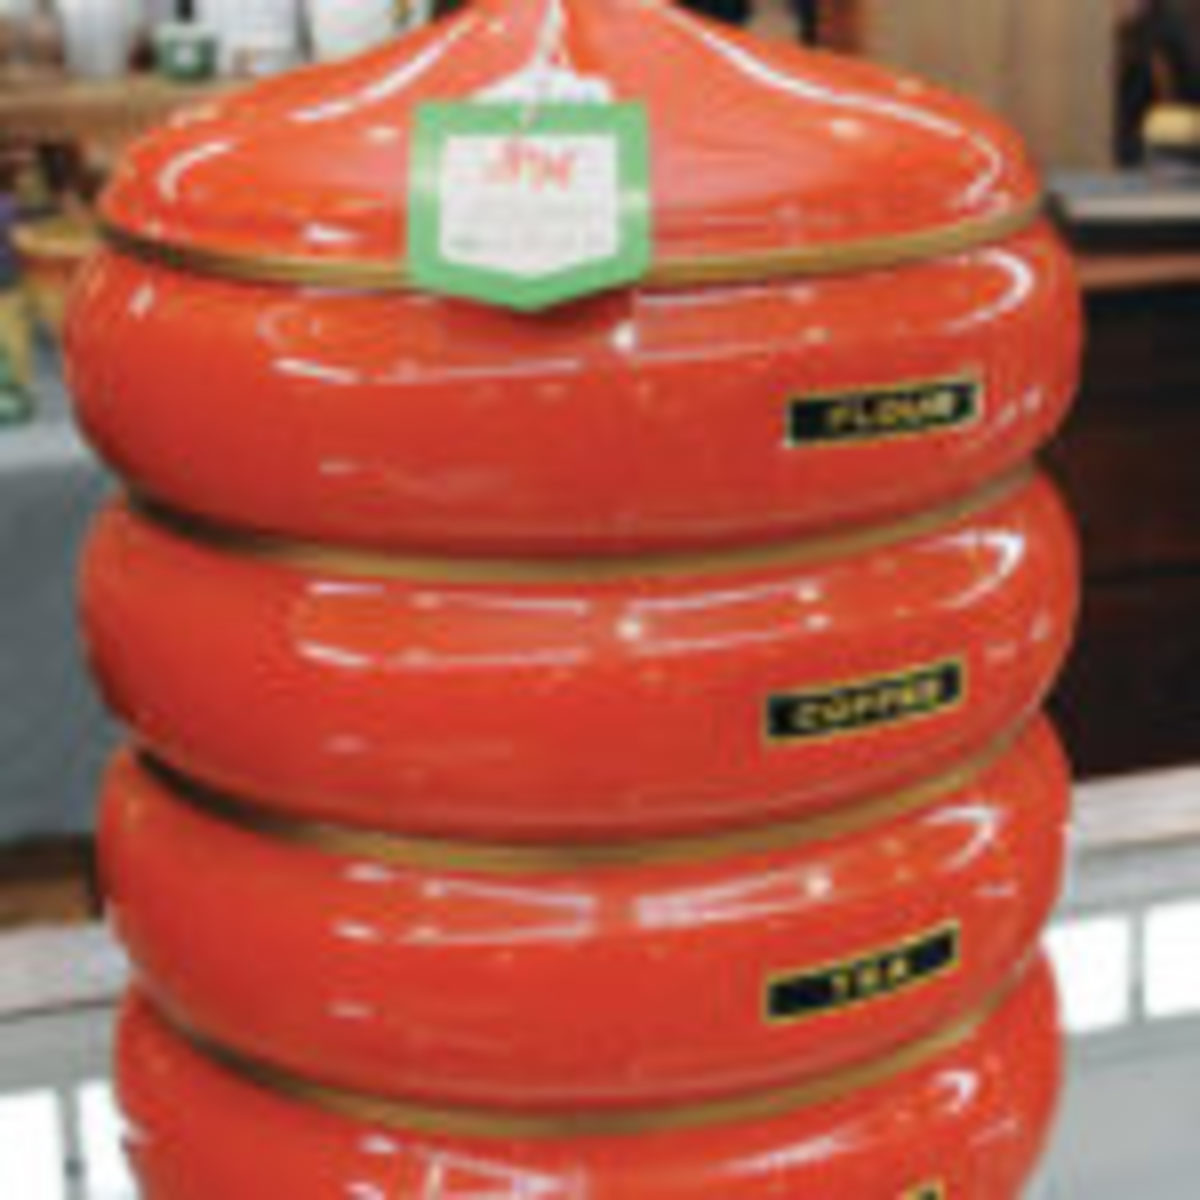 A set of vintage, orange canisters sits on display in a vendor's booth at the January Scott Antique Markets show in Columbus, Ohio.